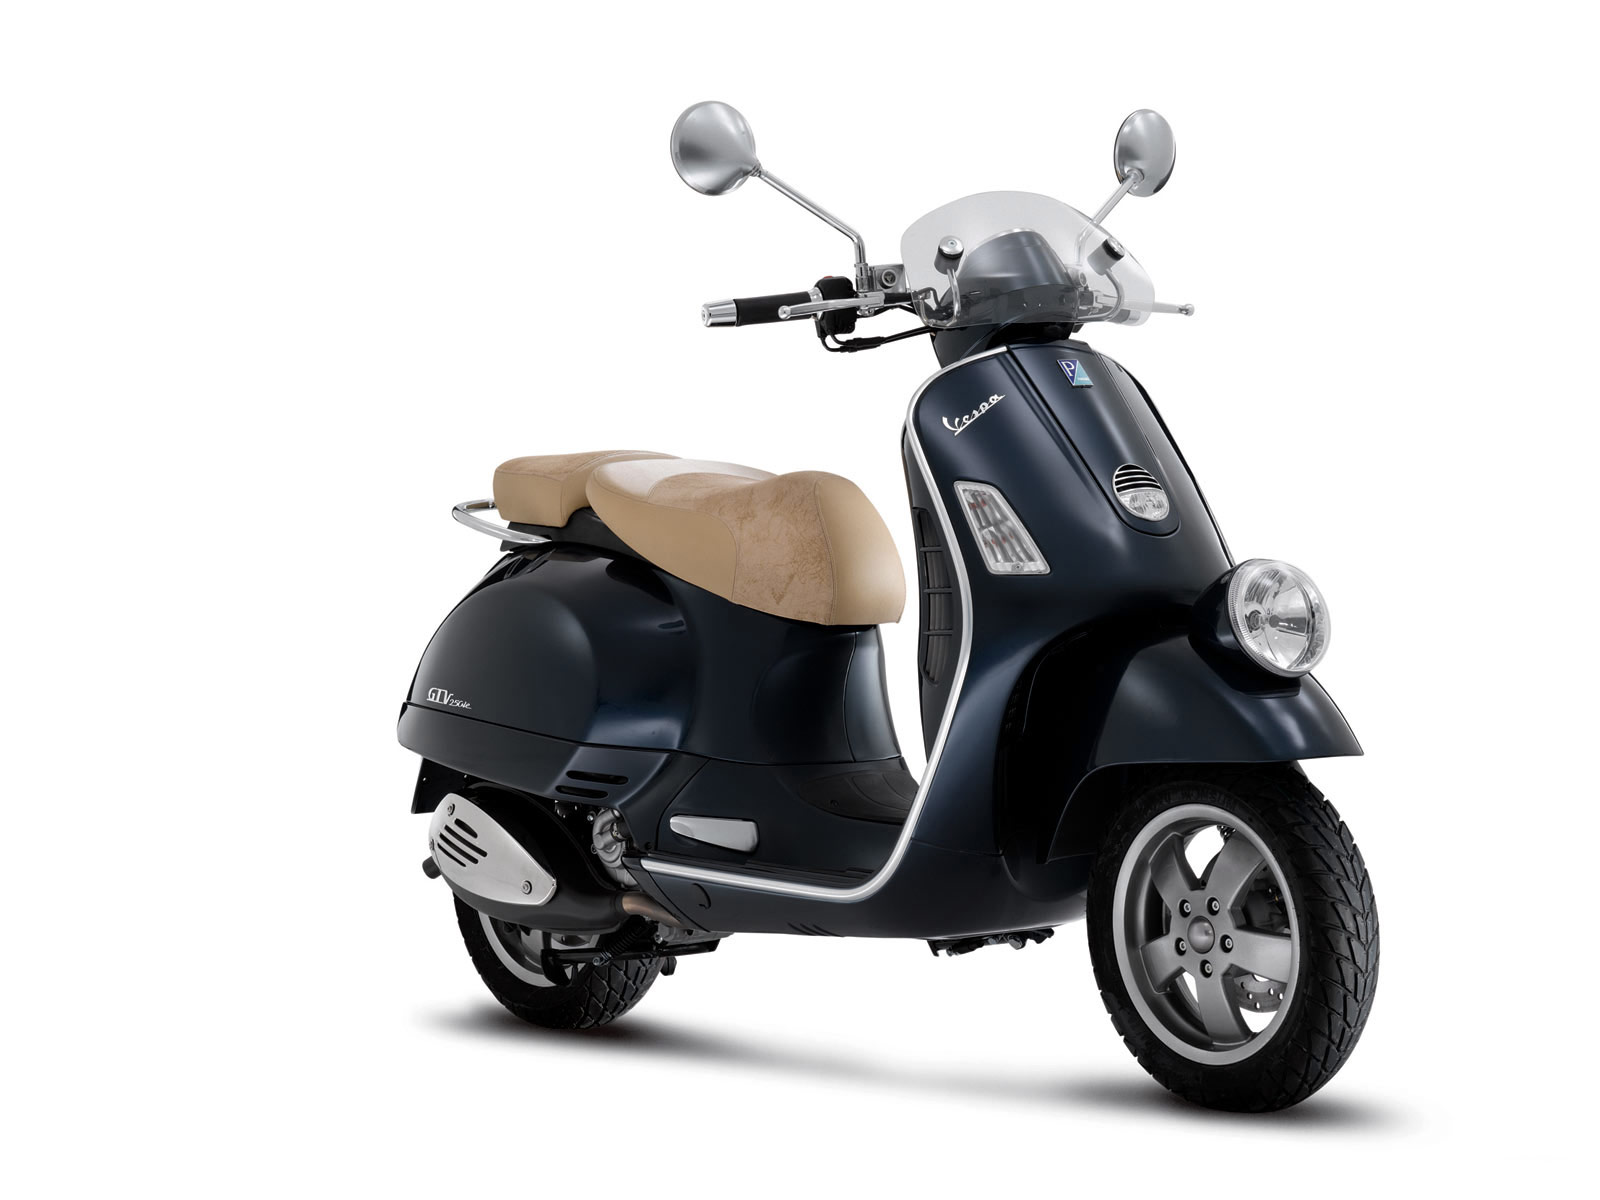 2009 vespa gtv 250ie scooter pictures accident lawyers info. Black Bedroom Furniture Sets. Home Design Ideas